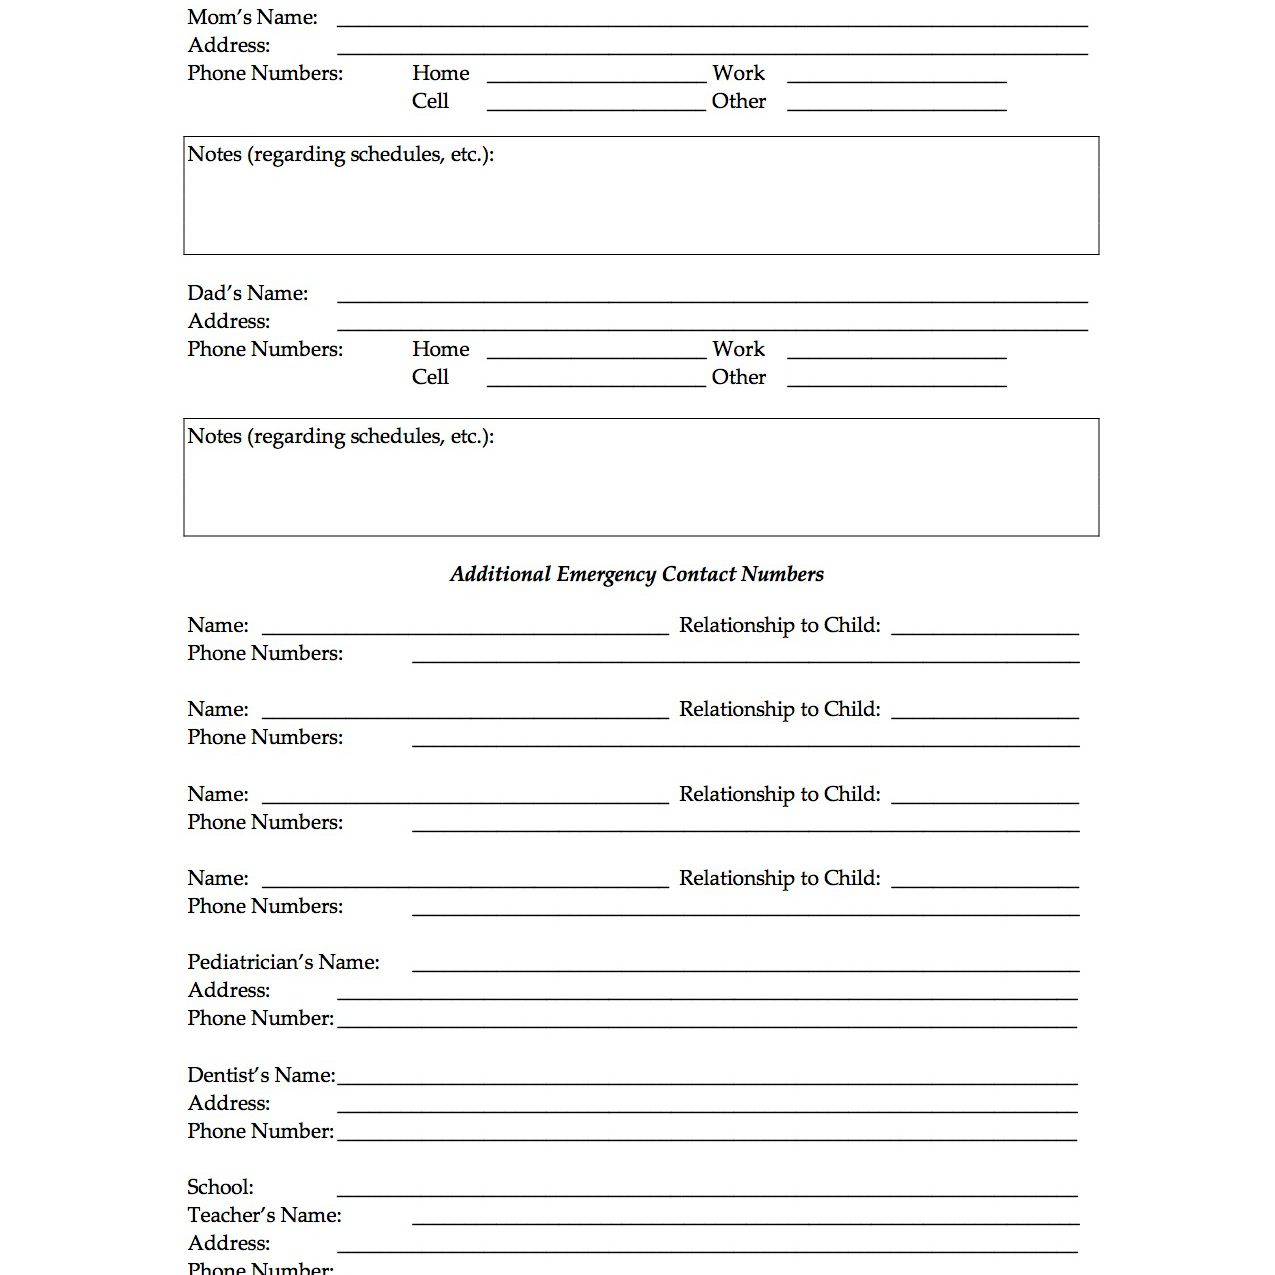 Free Daycare Forms For Parents To Fill Out